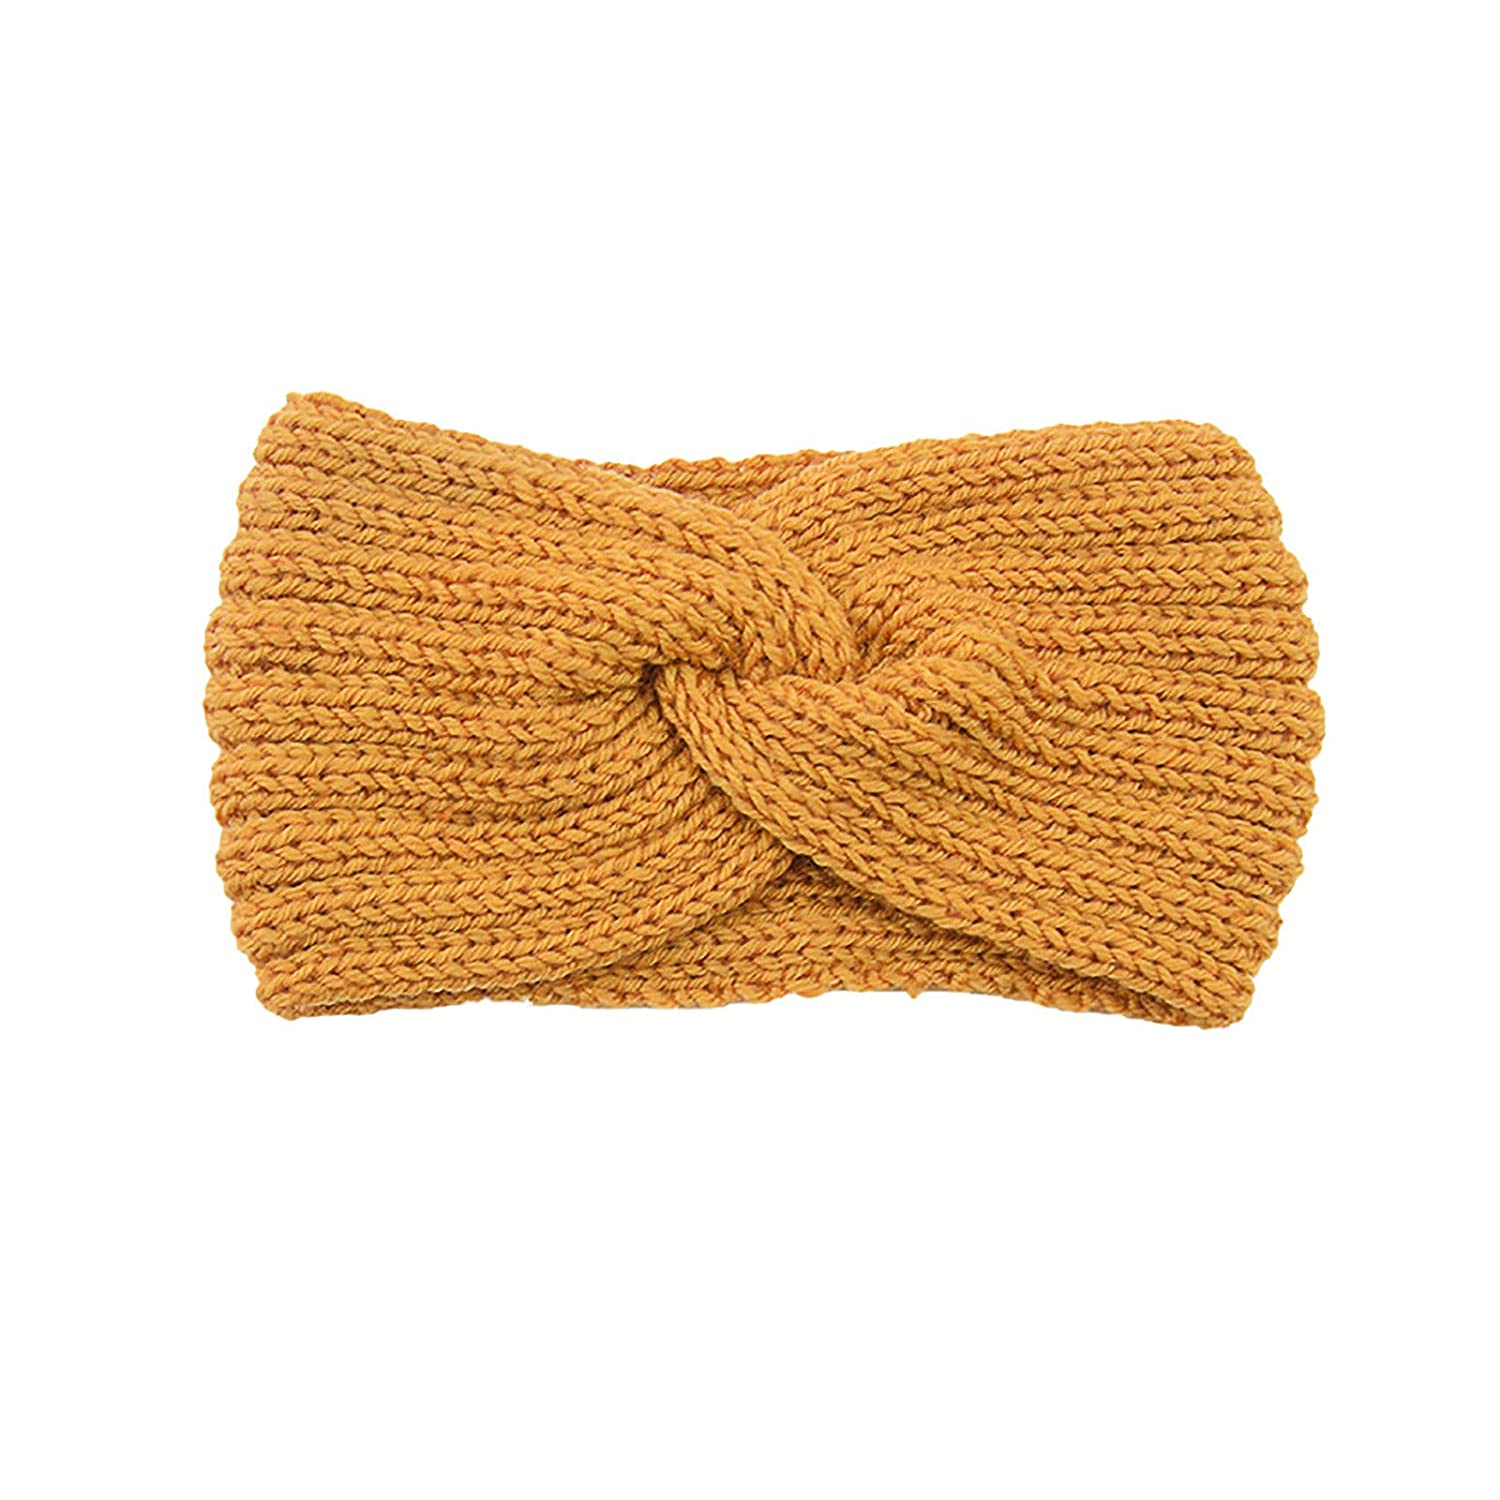 Thatso Winter Headbands for Women, Ear Warmer Headband with Buttons, Soft Stretchy Thick Cable Knitted Turban Hairband Gift (Yellow,One Size)